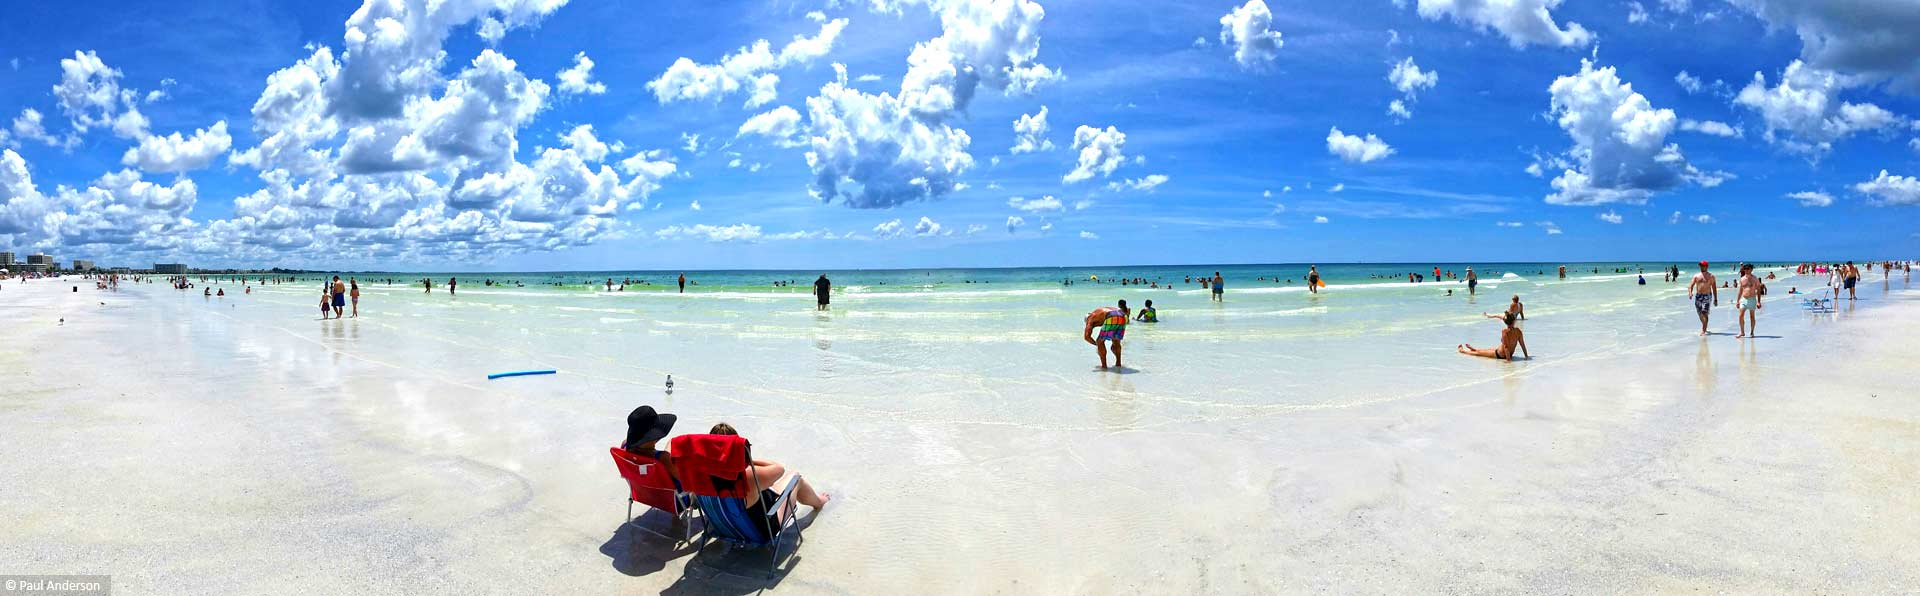 Siesta Key Beach Panormaic View